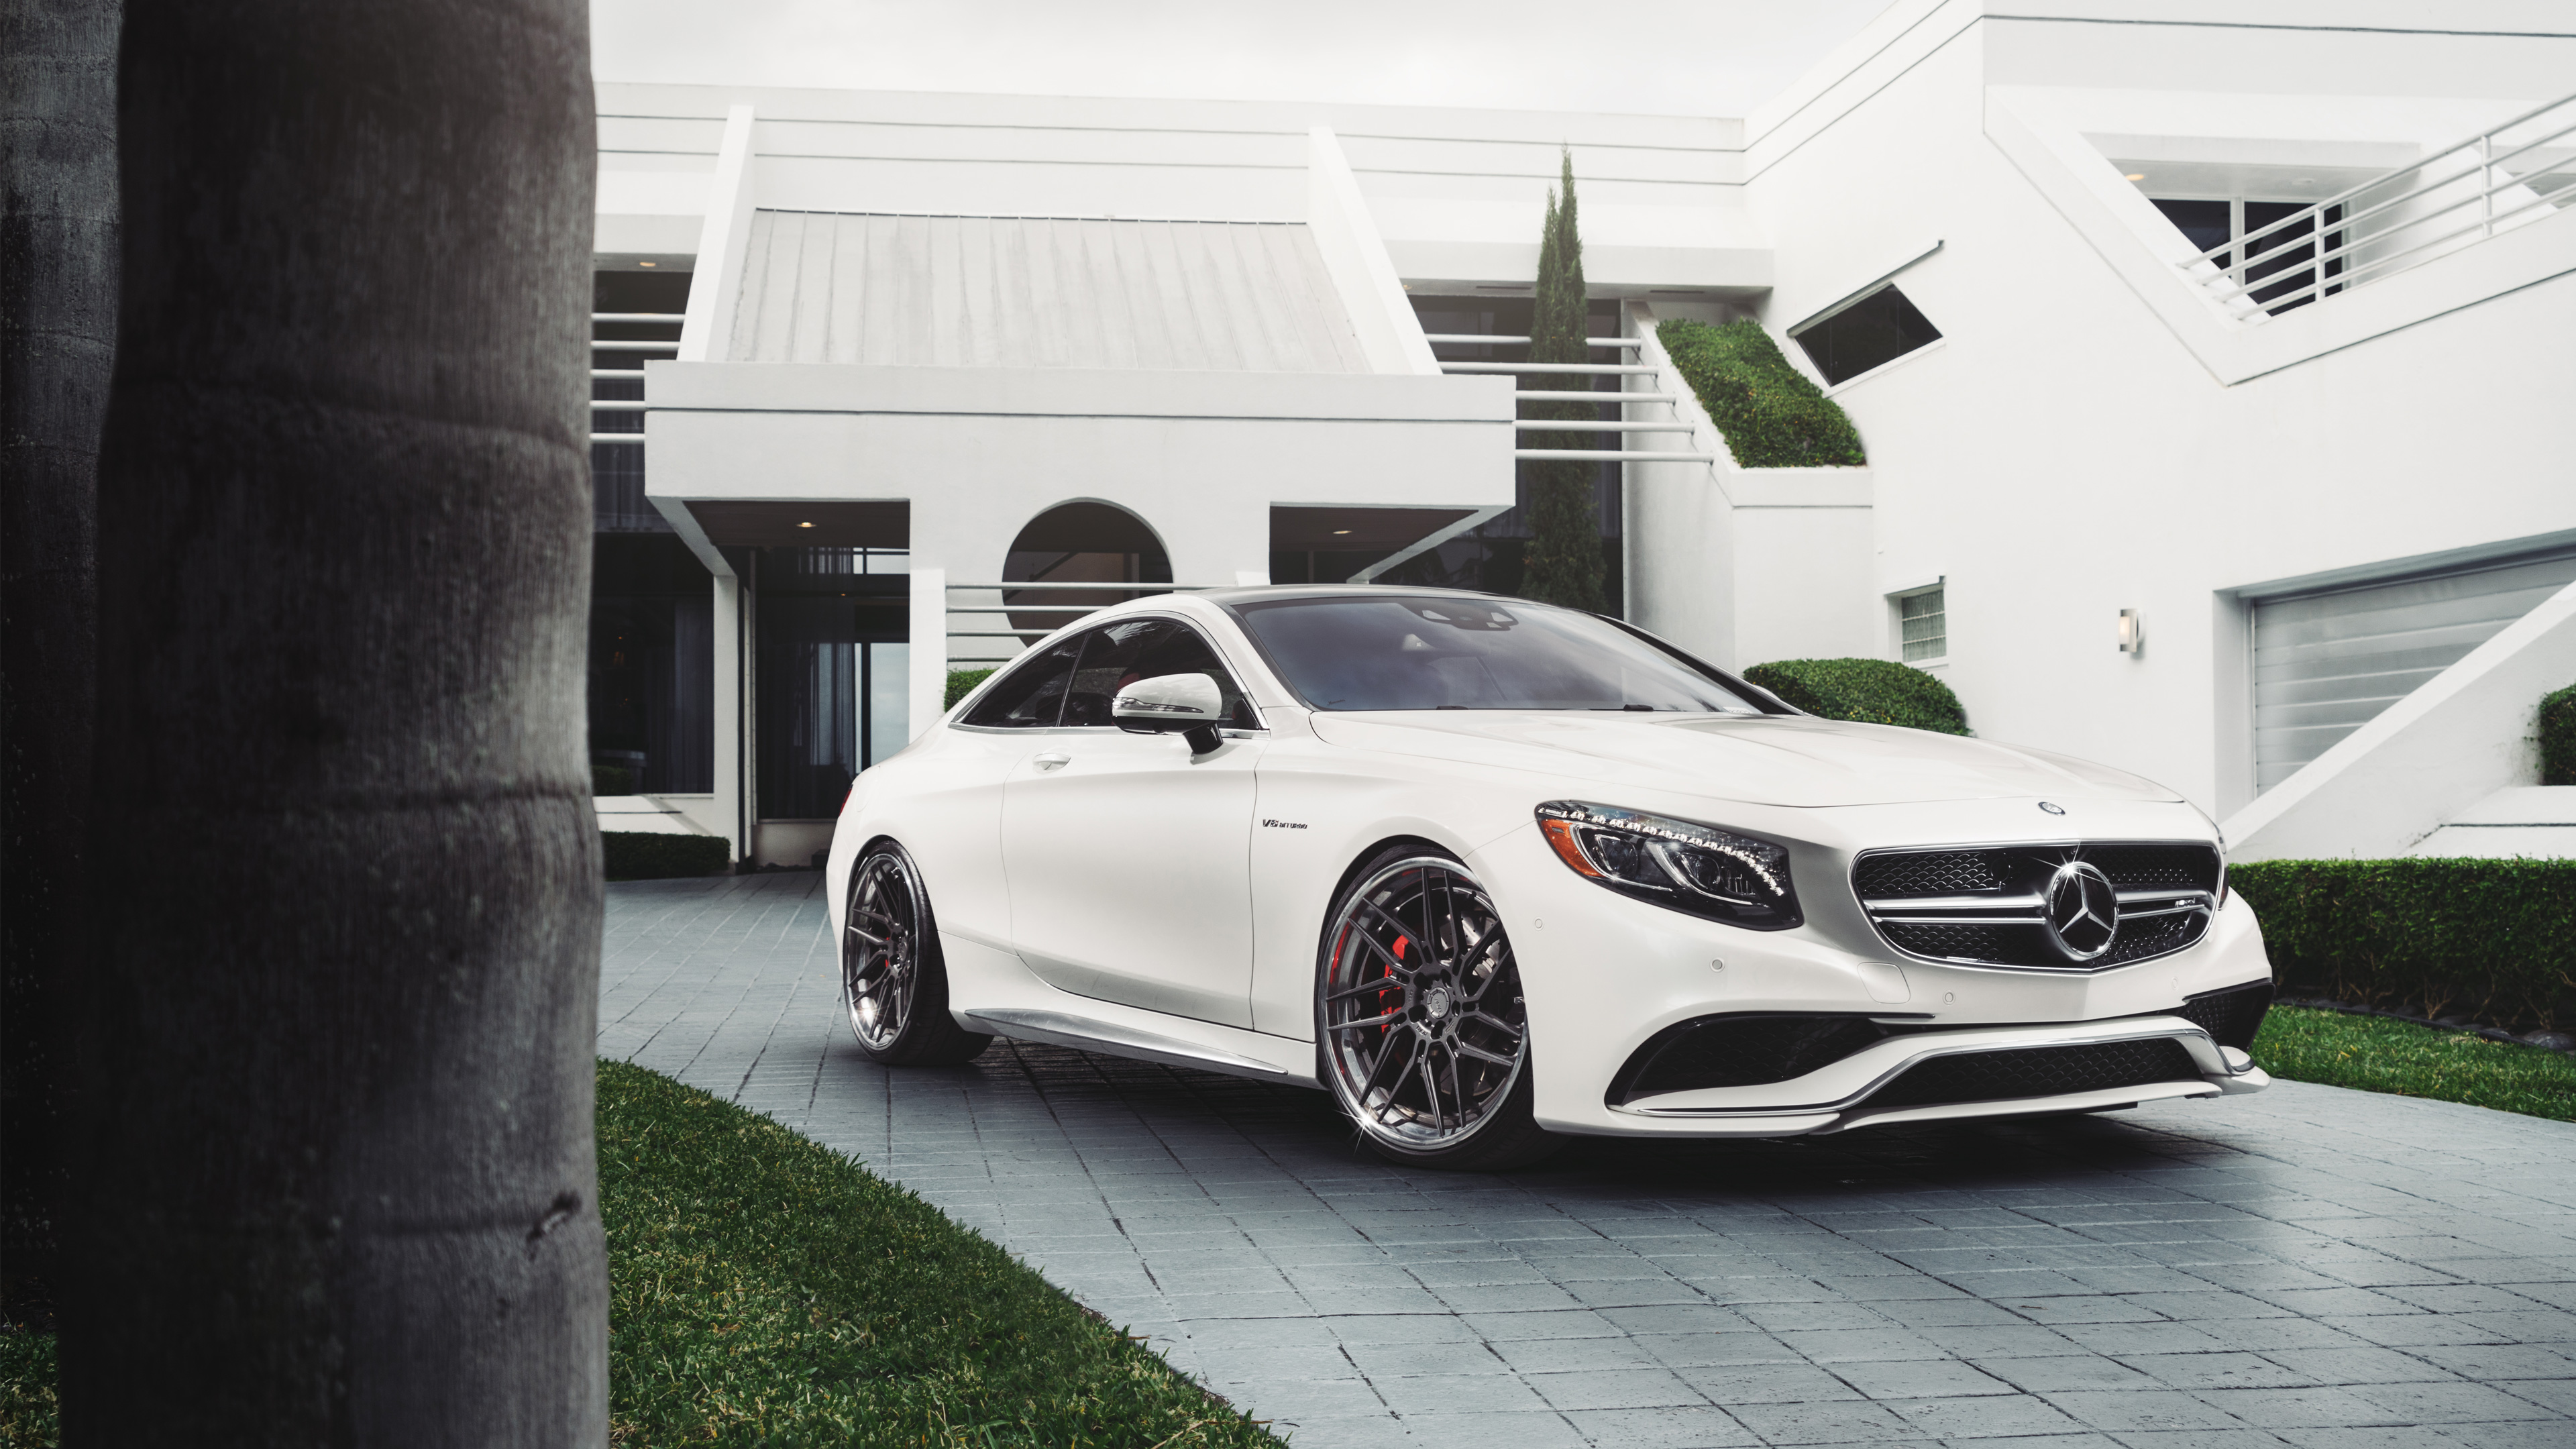 S 63 Amg Wallpaper: ADV1 Mercedes Benz S63 AMG Wallpaper